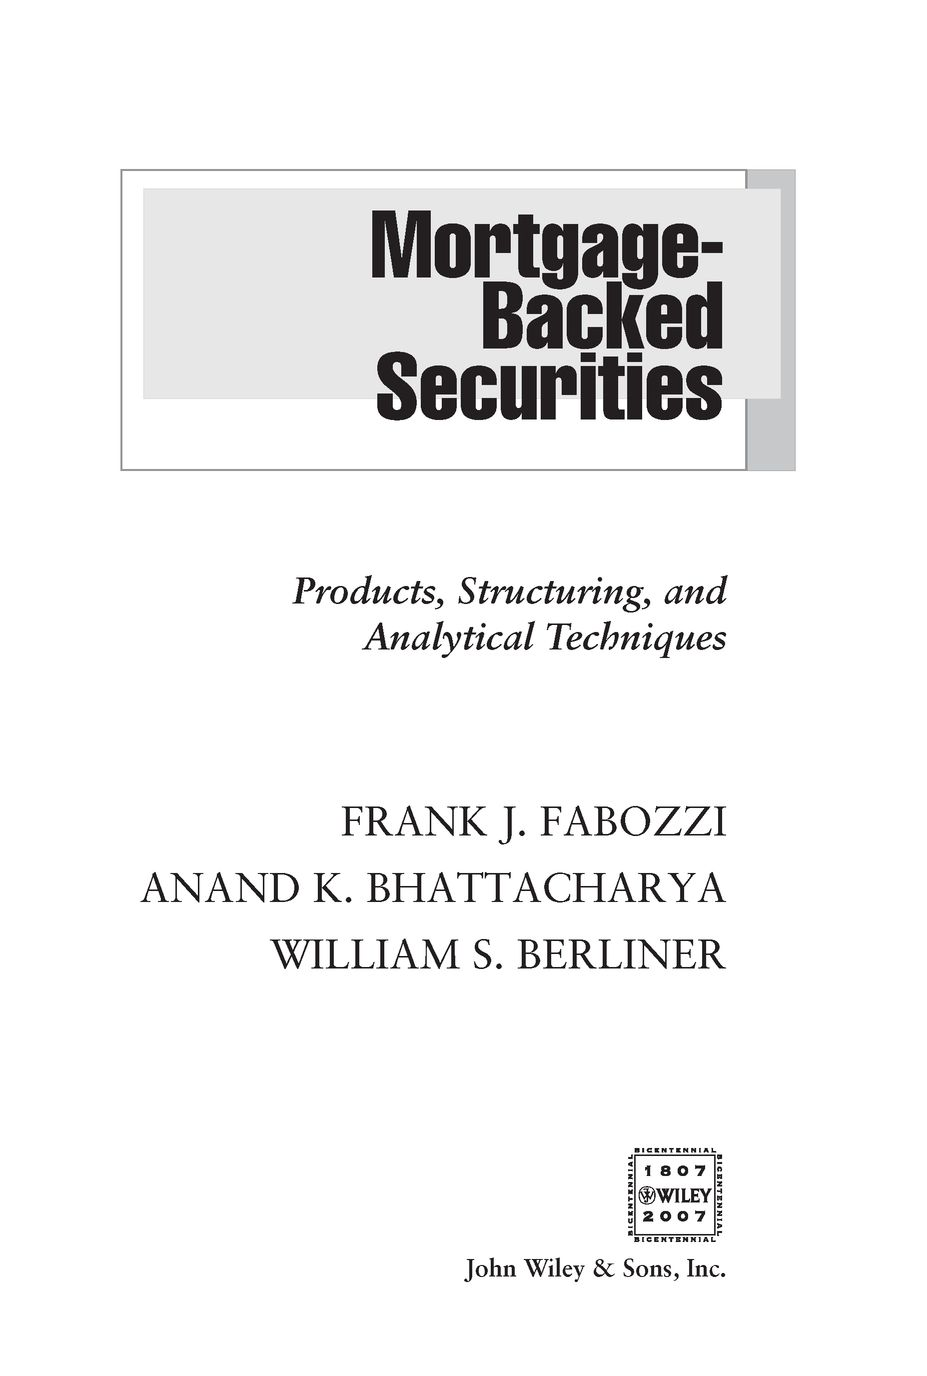 Analytical Learning title page - mortgage-backed securities: products